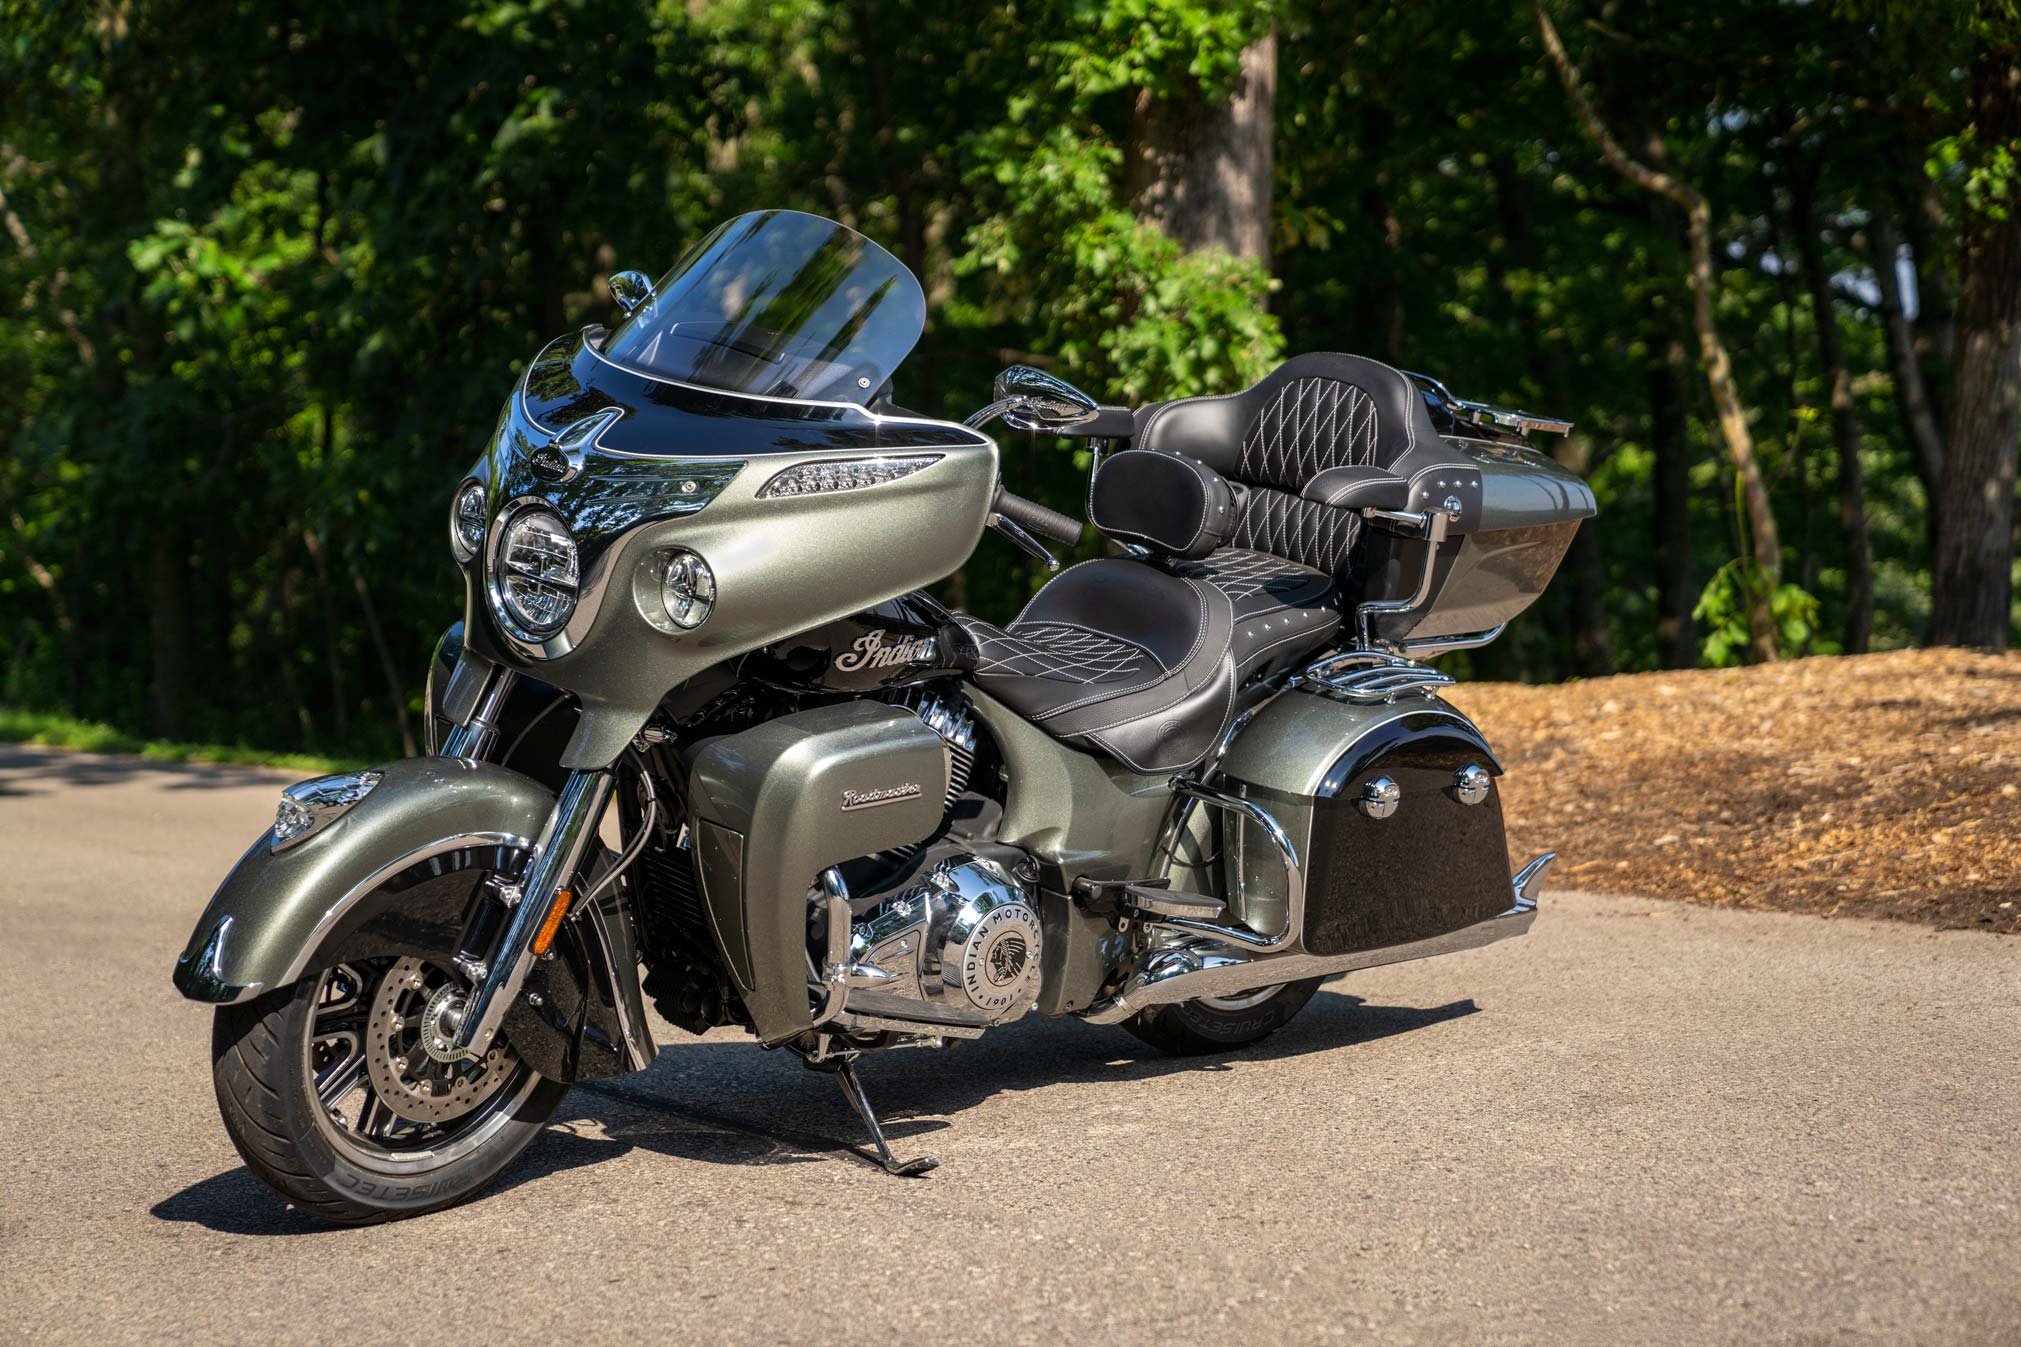 2021 Indian Roadmaster Parked Side View